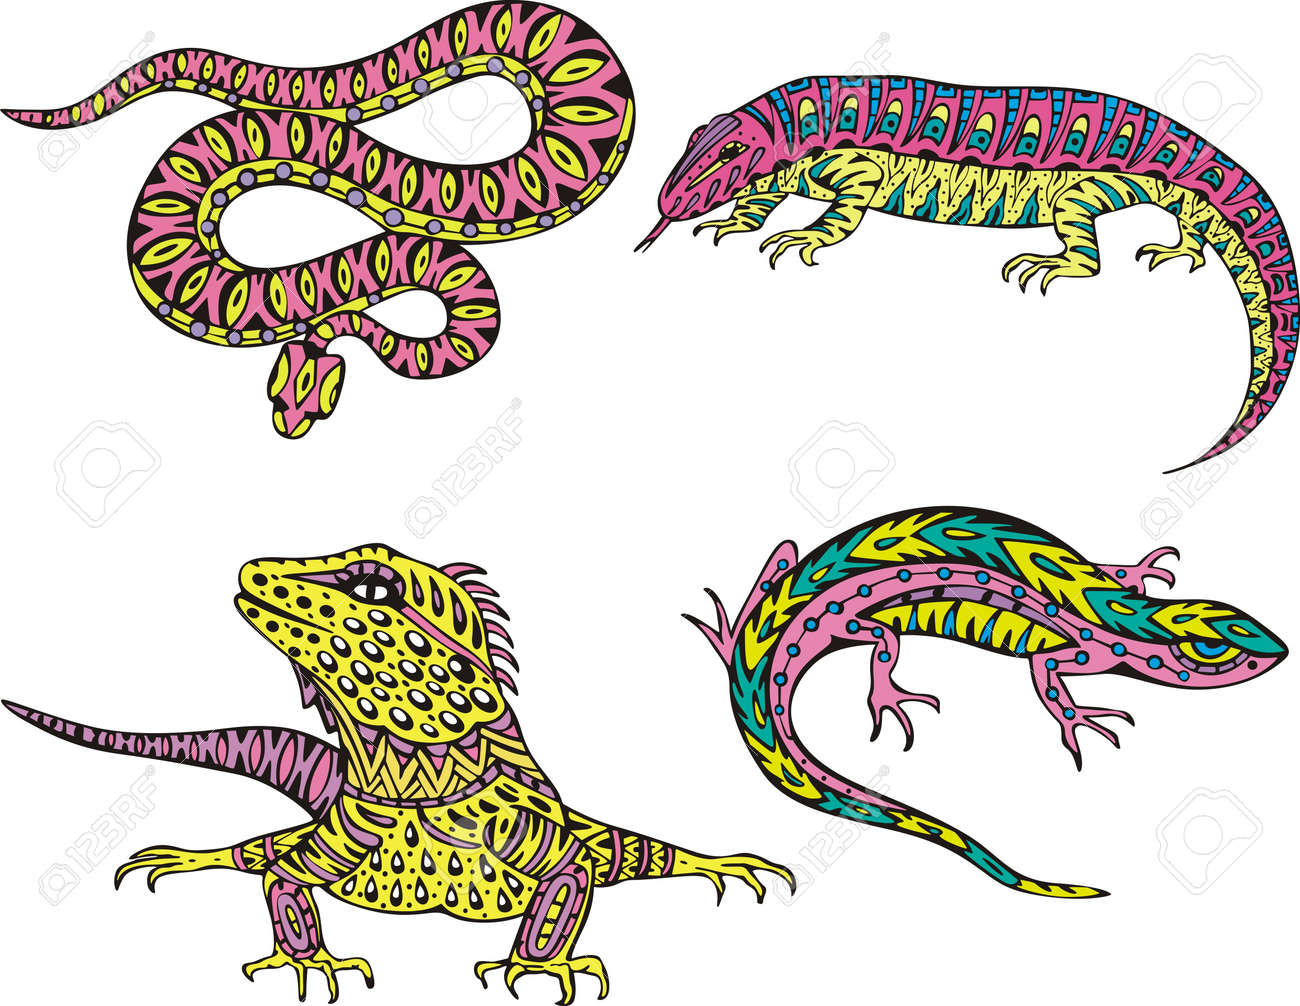 stylized motley snake and lizards set of color vector illustrations